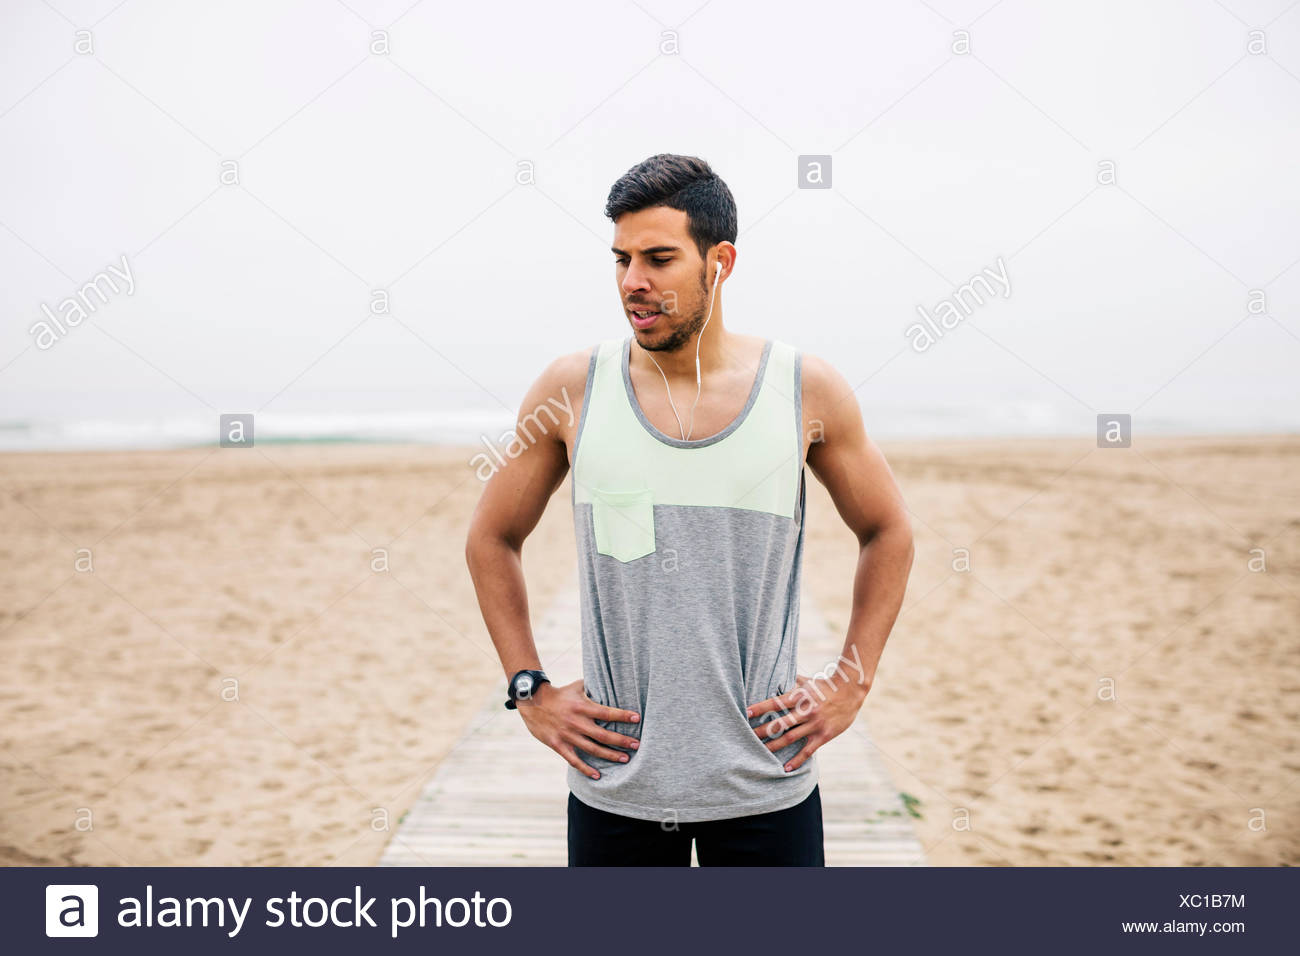 Portrait of athlete with earbuds on the beach - Stock Image